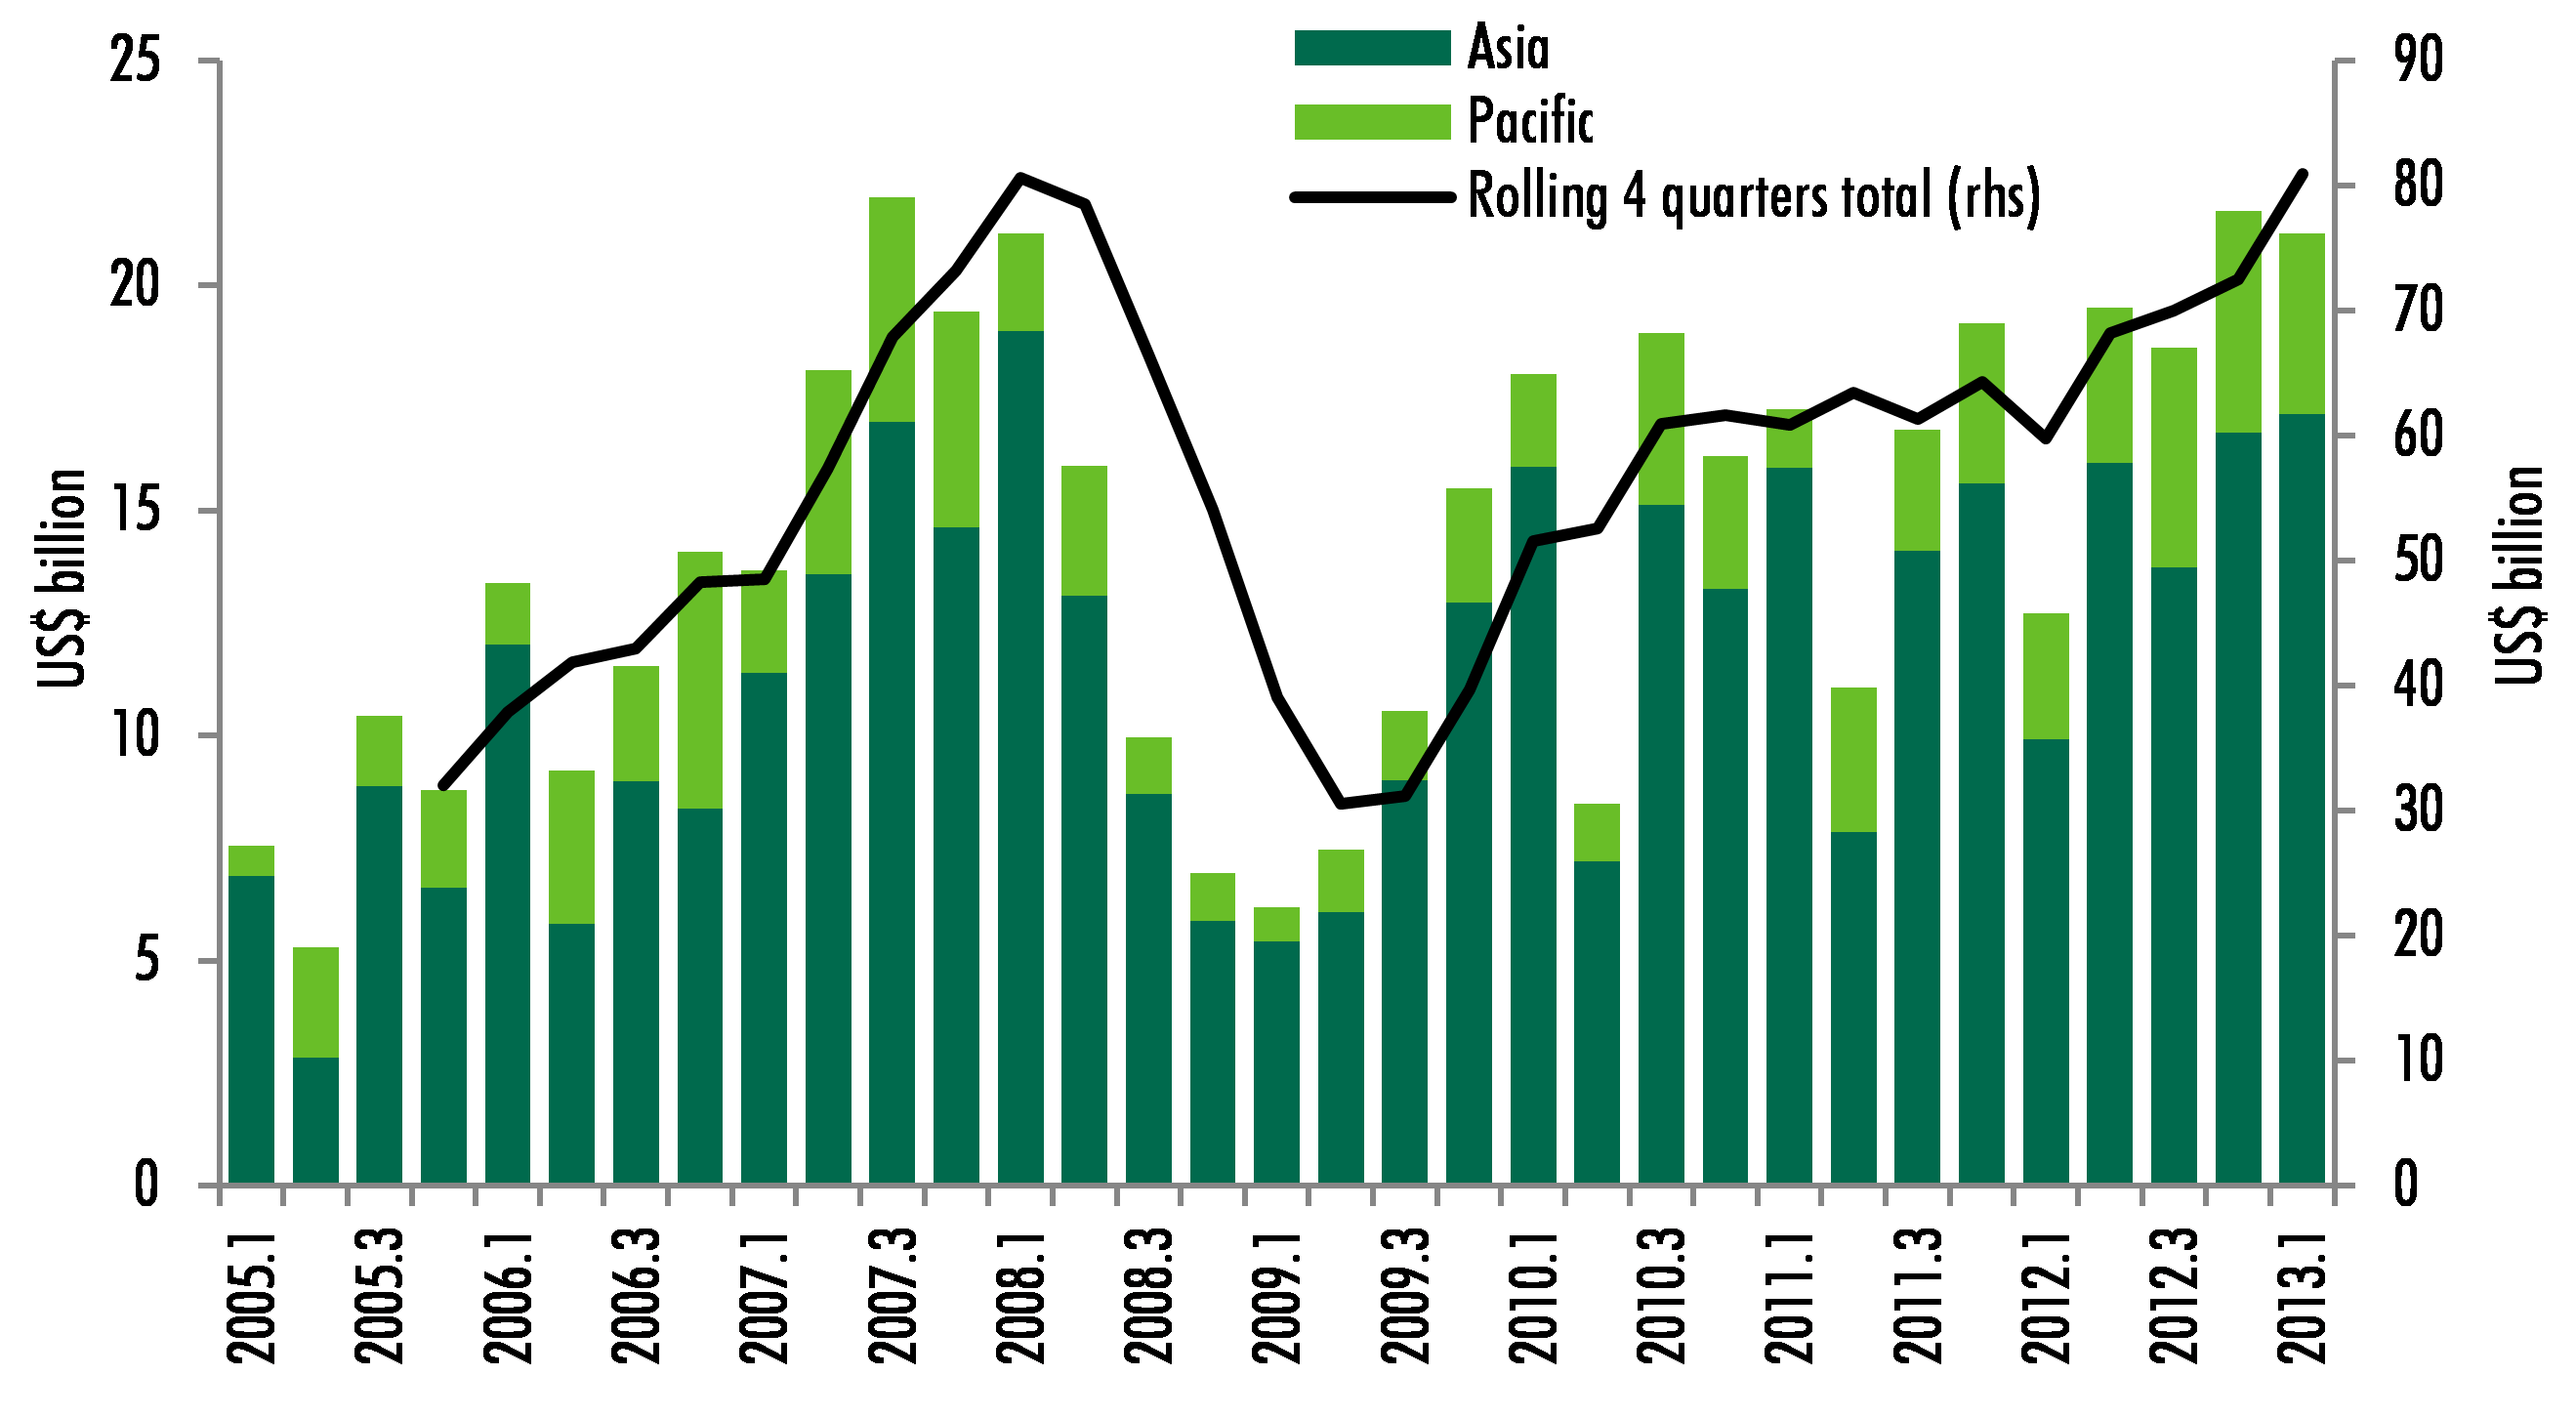 Total Commercial Real Estate Turnover in Asia Pacific